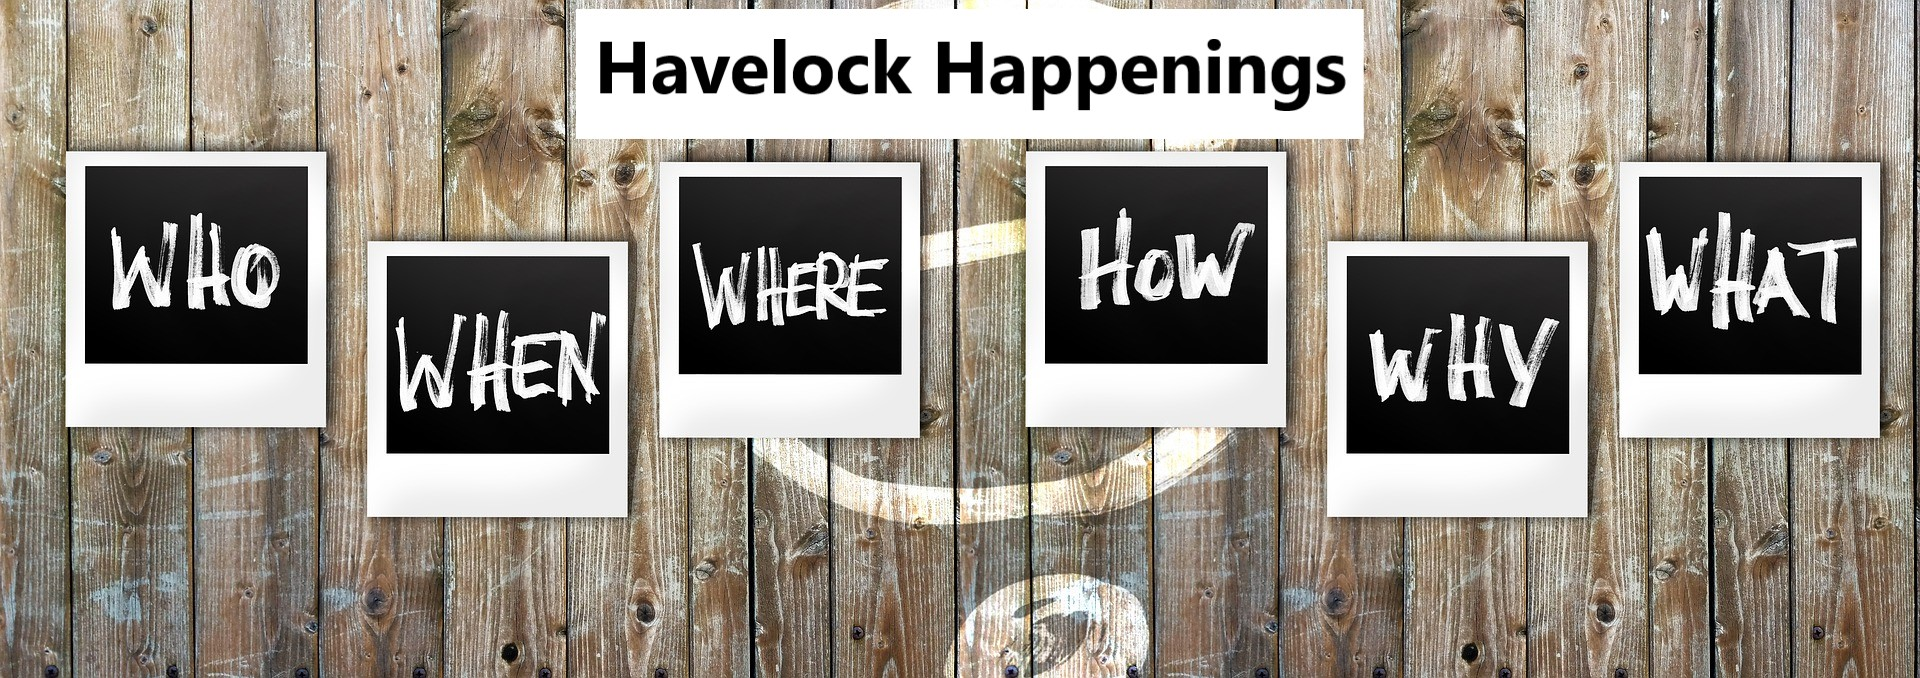 Havelock Happenings